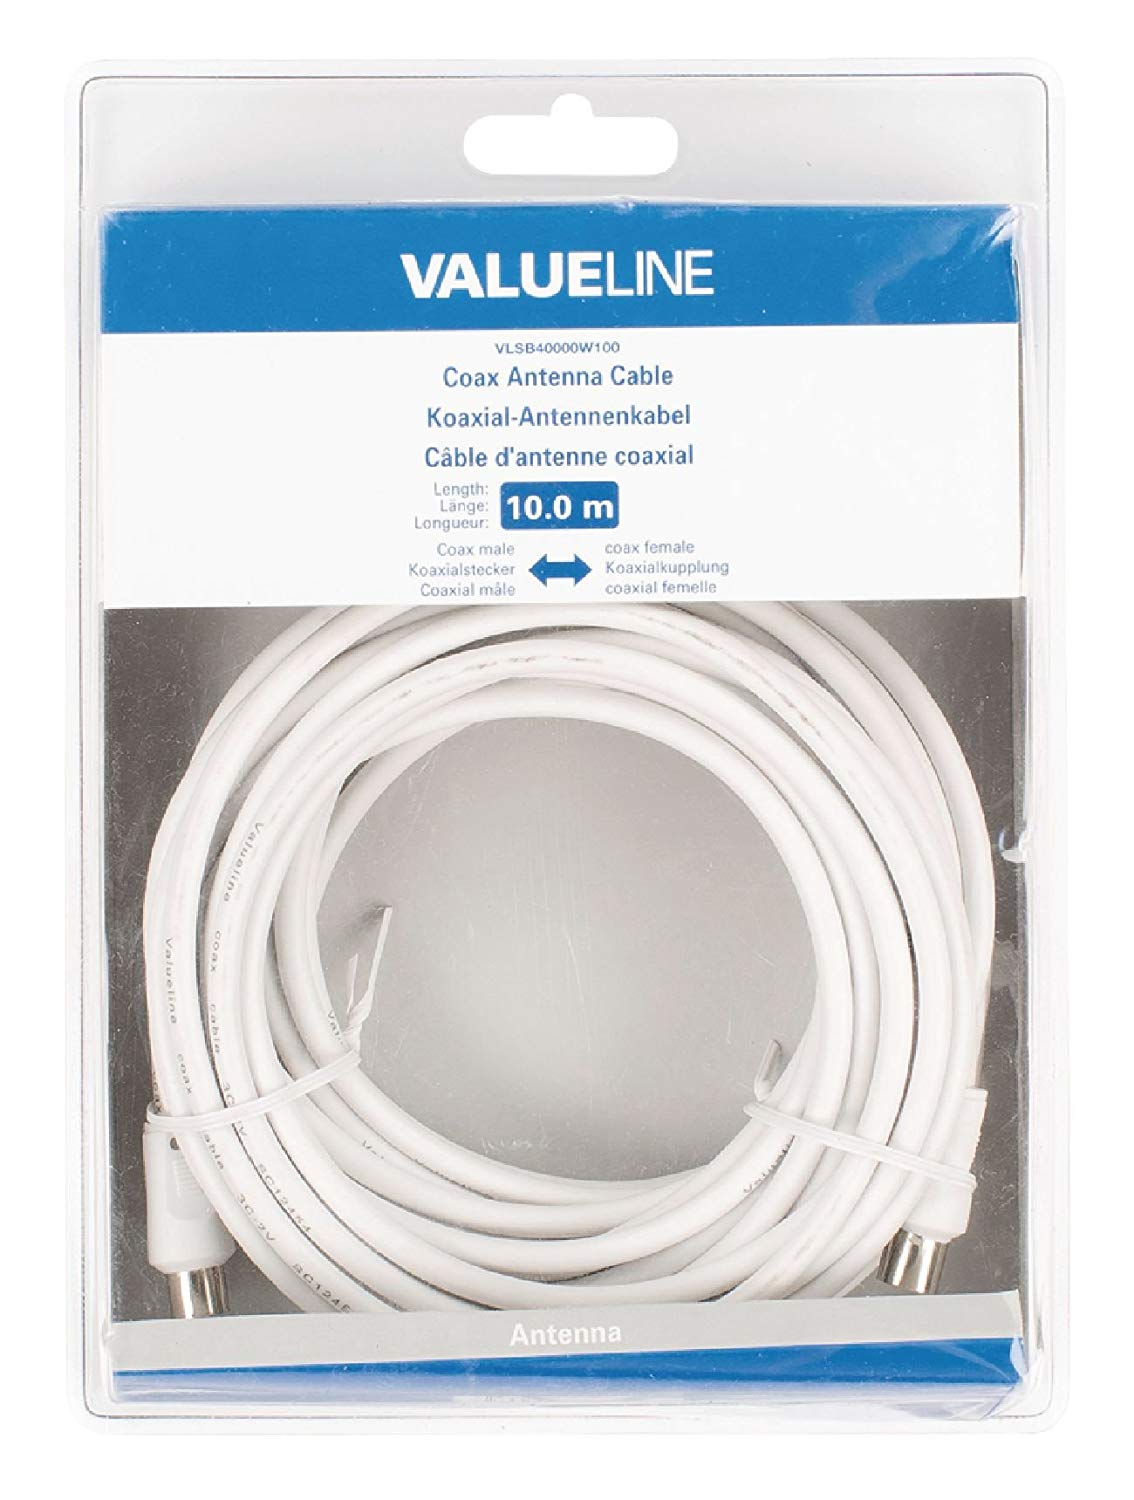 Coax Antenne Cheap Coax Cable Antenna Find Coax Cable Antenna Deals On Line At